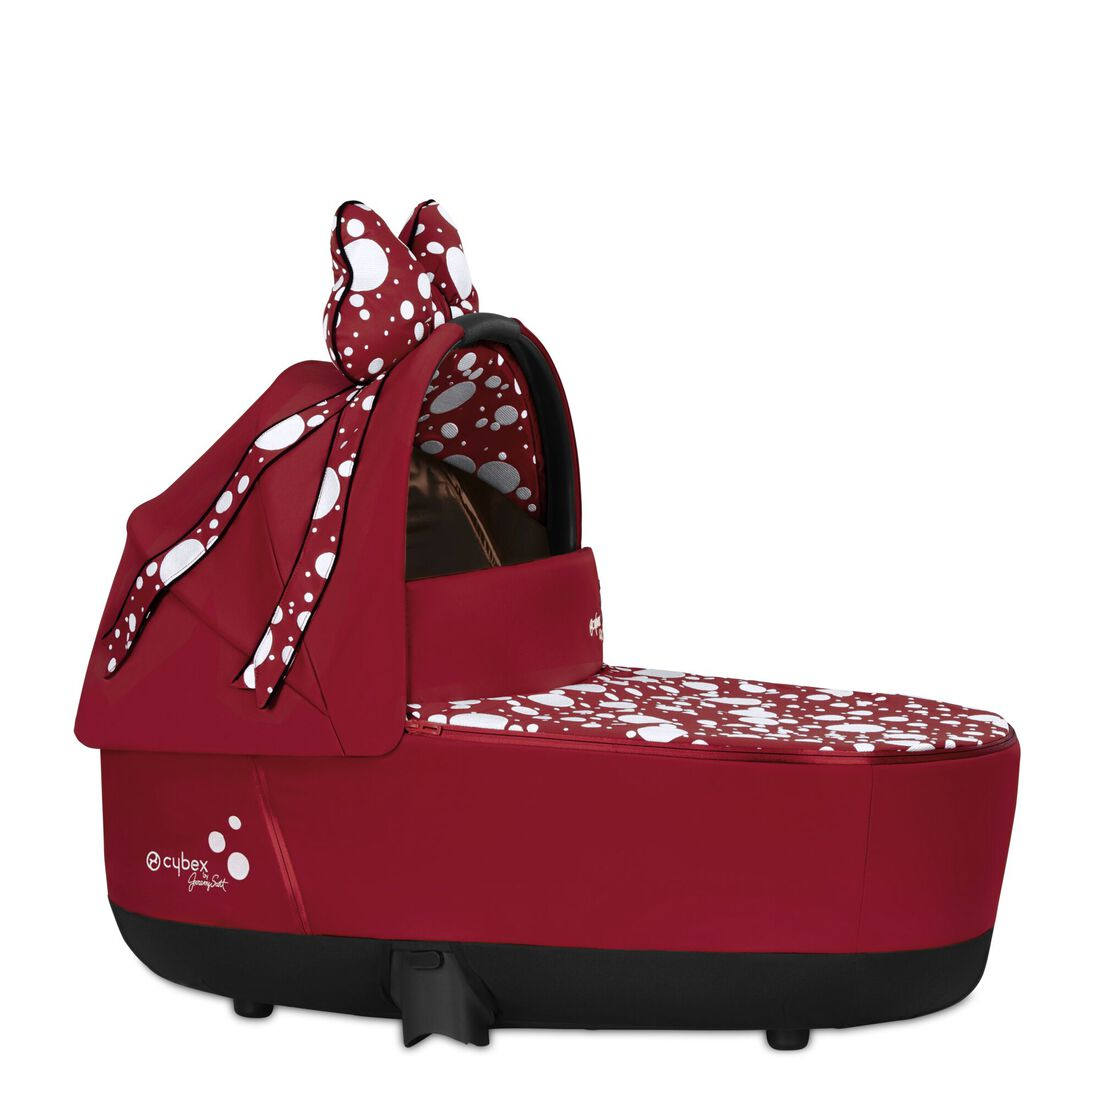 CYBEX Priam Lux Carry Cot - Petticoat Red in Petticoat Red large image number 1